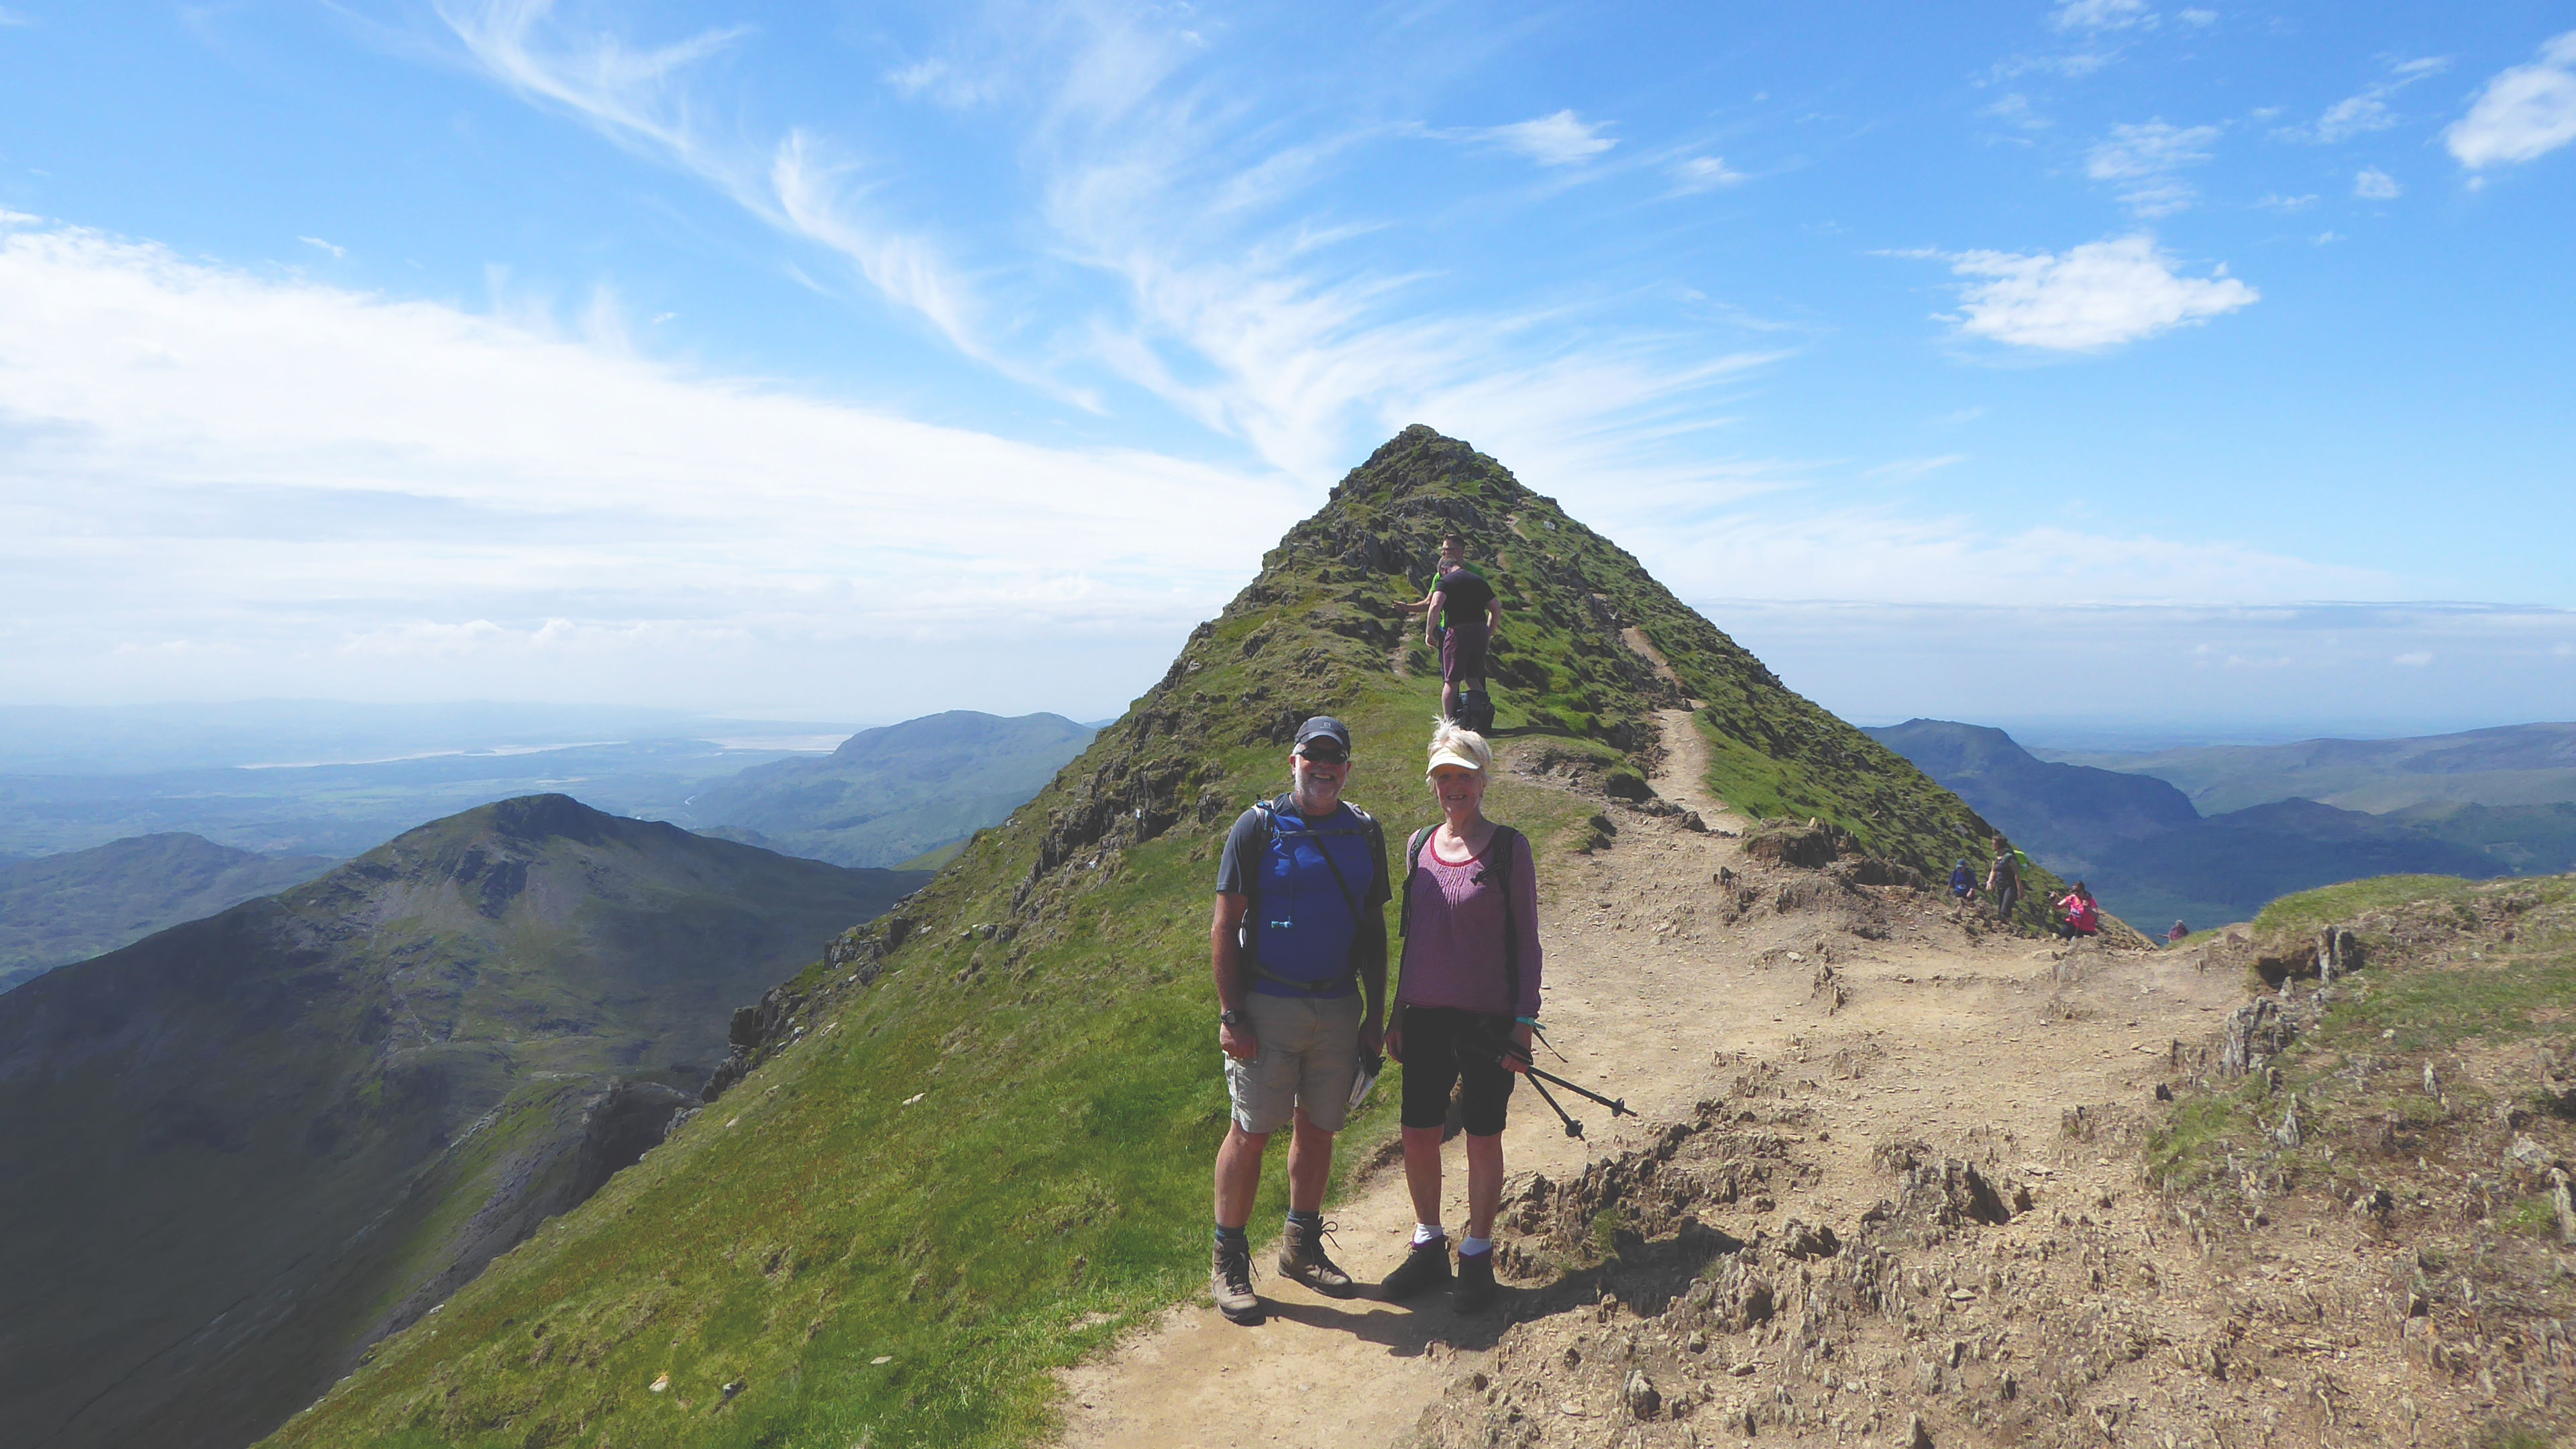 Mike and Heather approaching the top of Snowdon, Photo by Ed Bramley